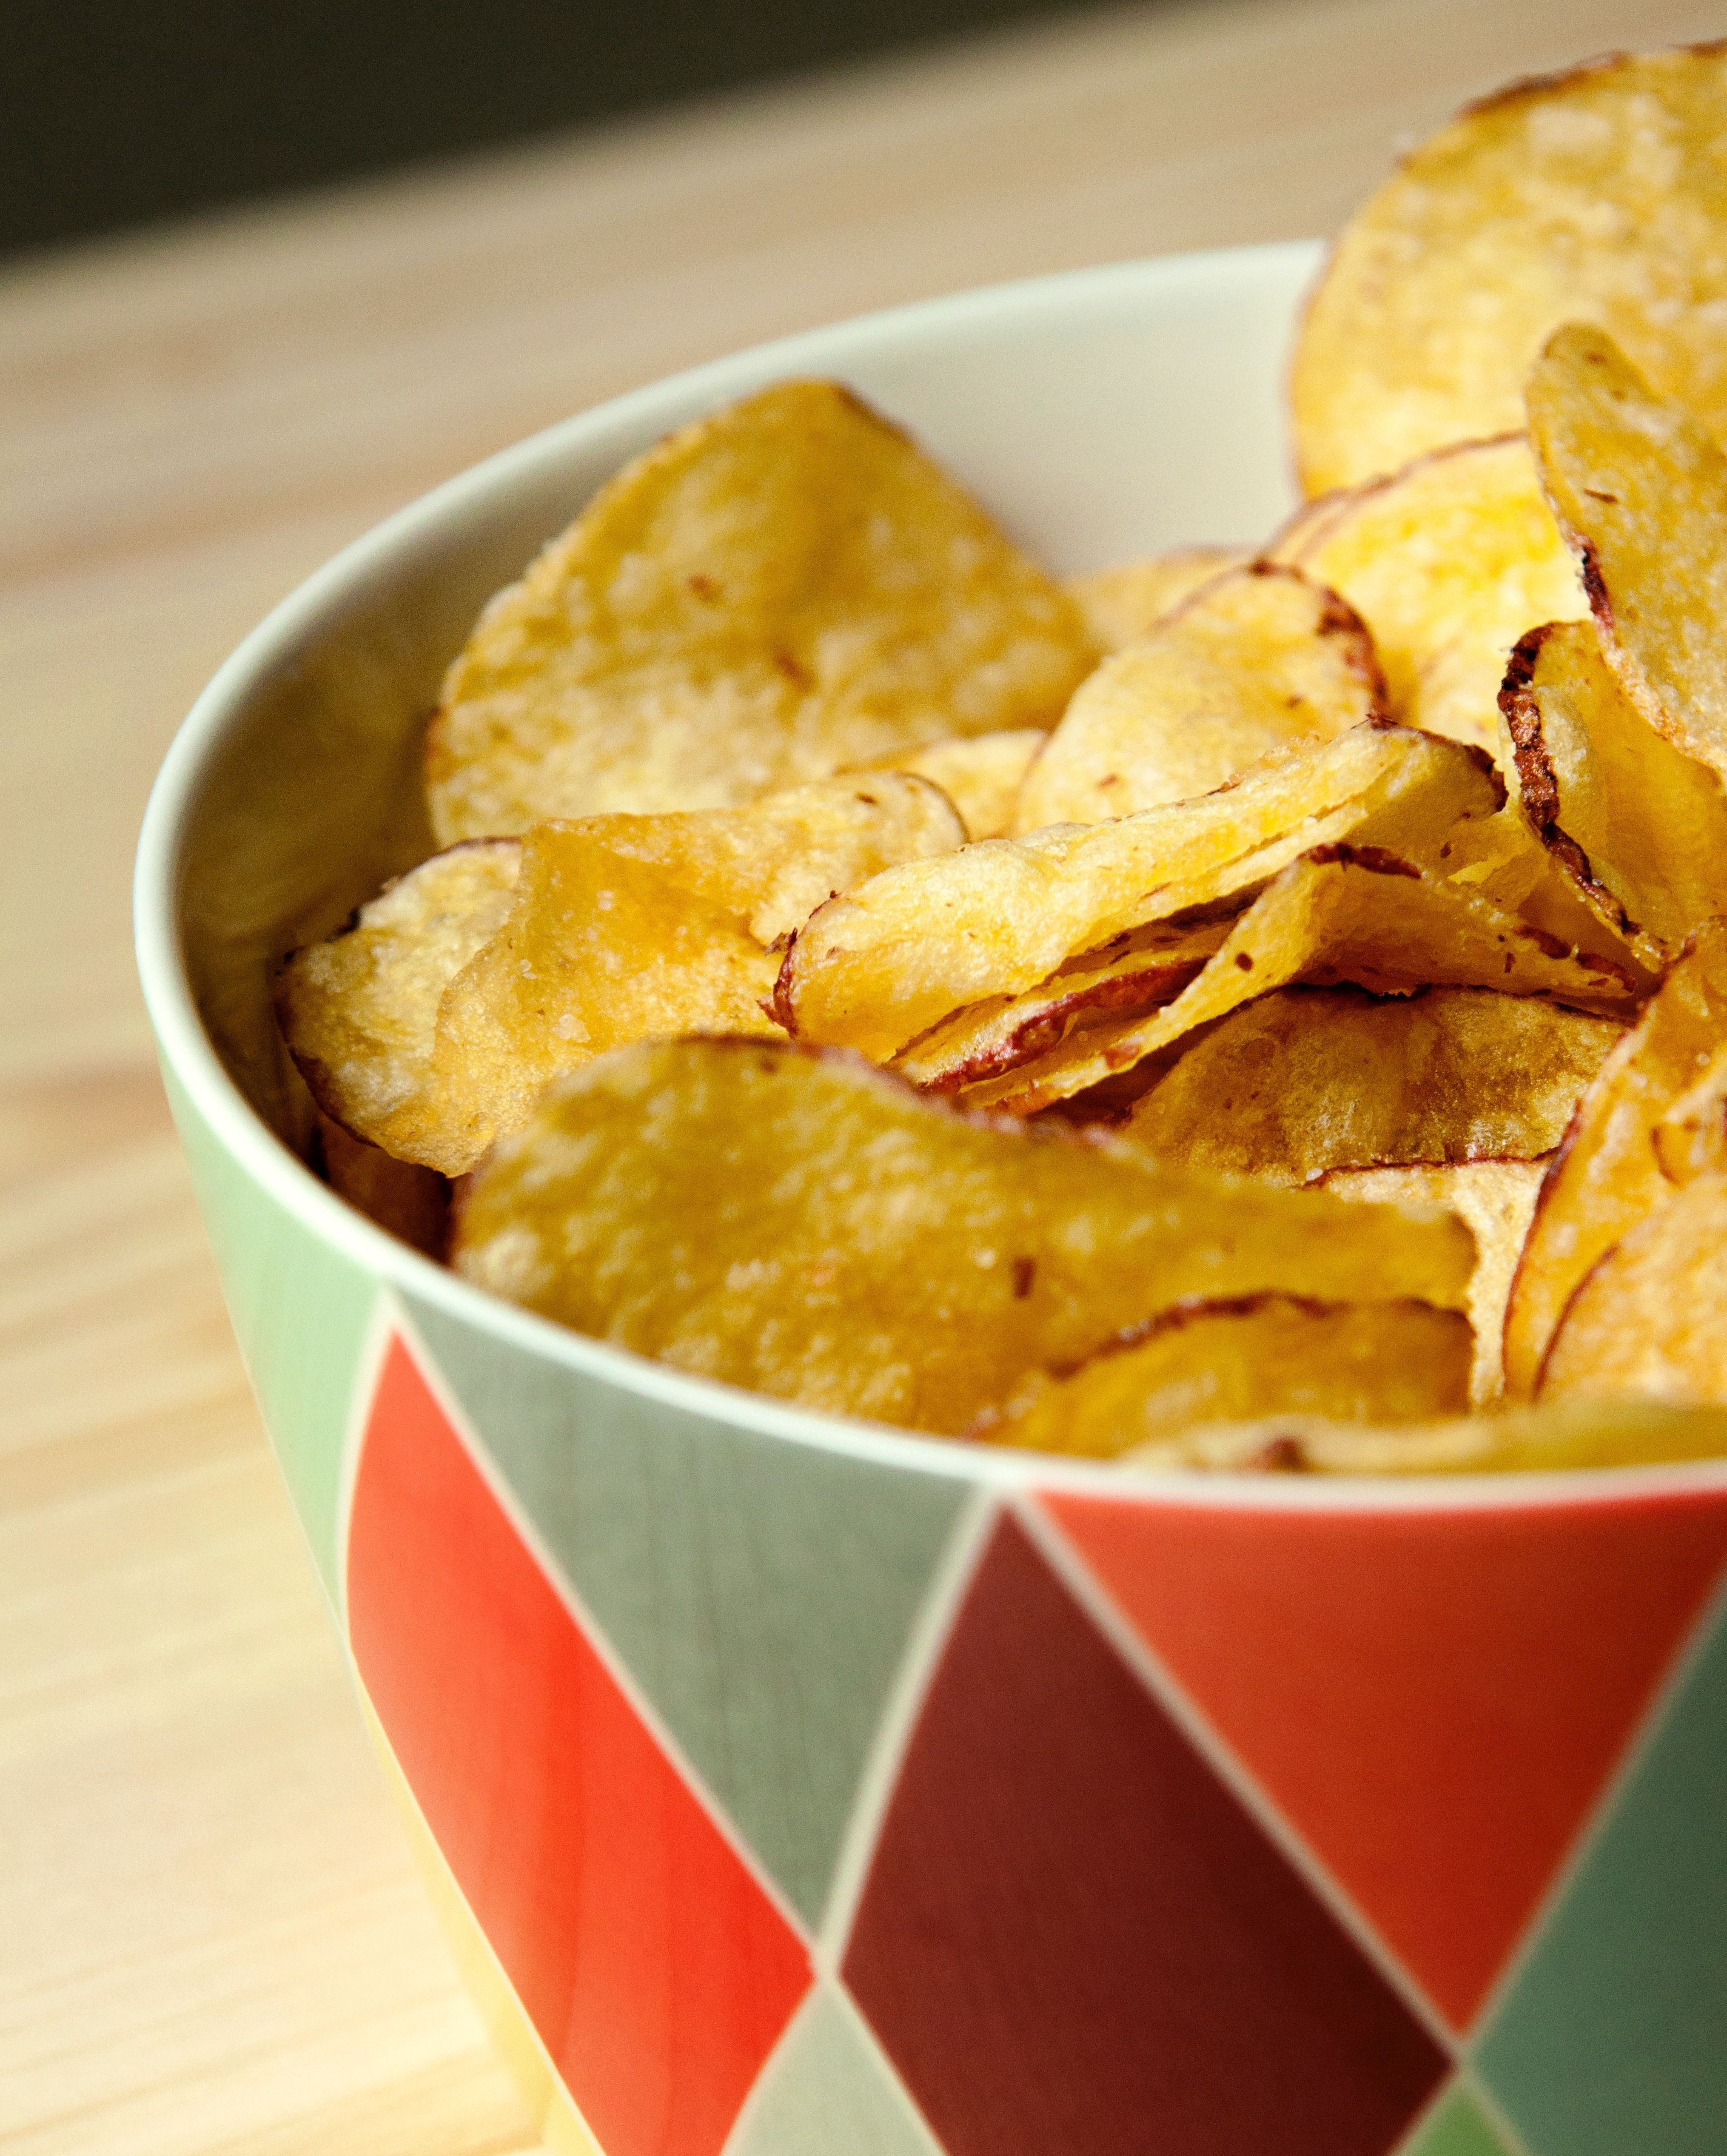 It's Chips and Dip day! But, what's the dip without the perfect chip? These 2-ingredient Lemon Pepper Microwave Potato Chips are so easy to make you'll never reach for a bag of store-bought potato chips again. You can easily customize the flavor by changing up the seasoning! We suggest using a packet of your fave ranch seasoning and serving with buffalo chicken dip. YUM! #potatowedgesselbermachen